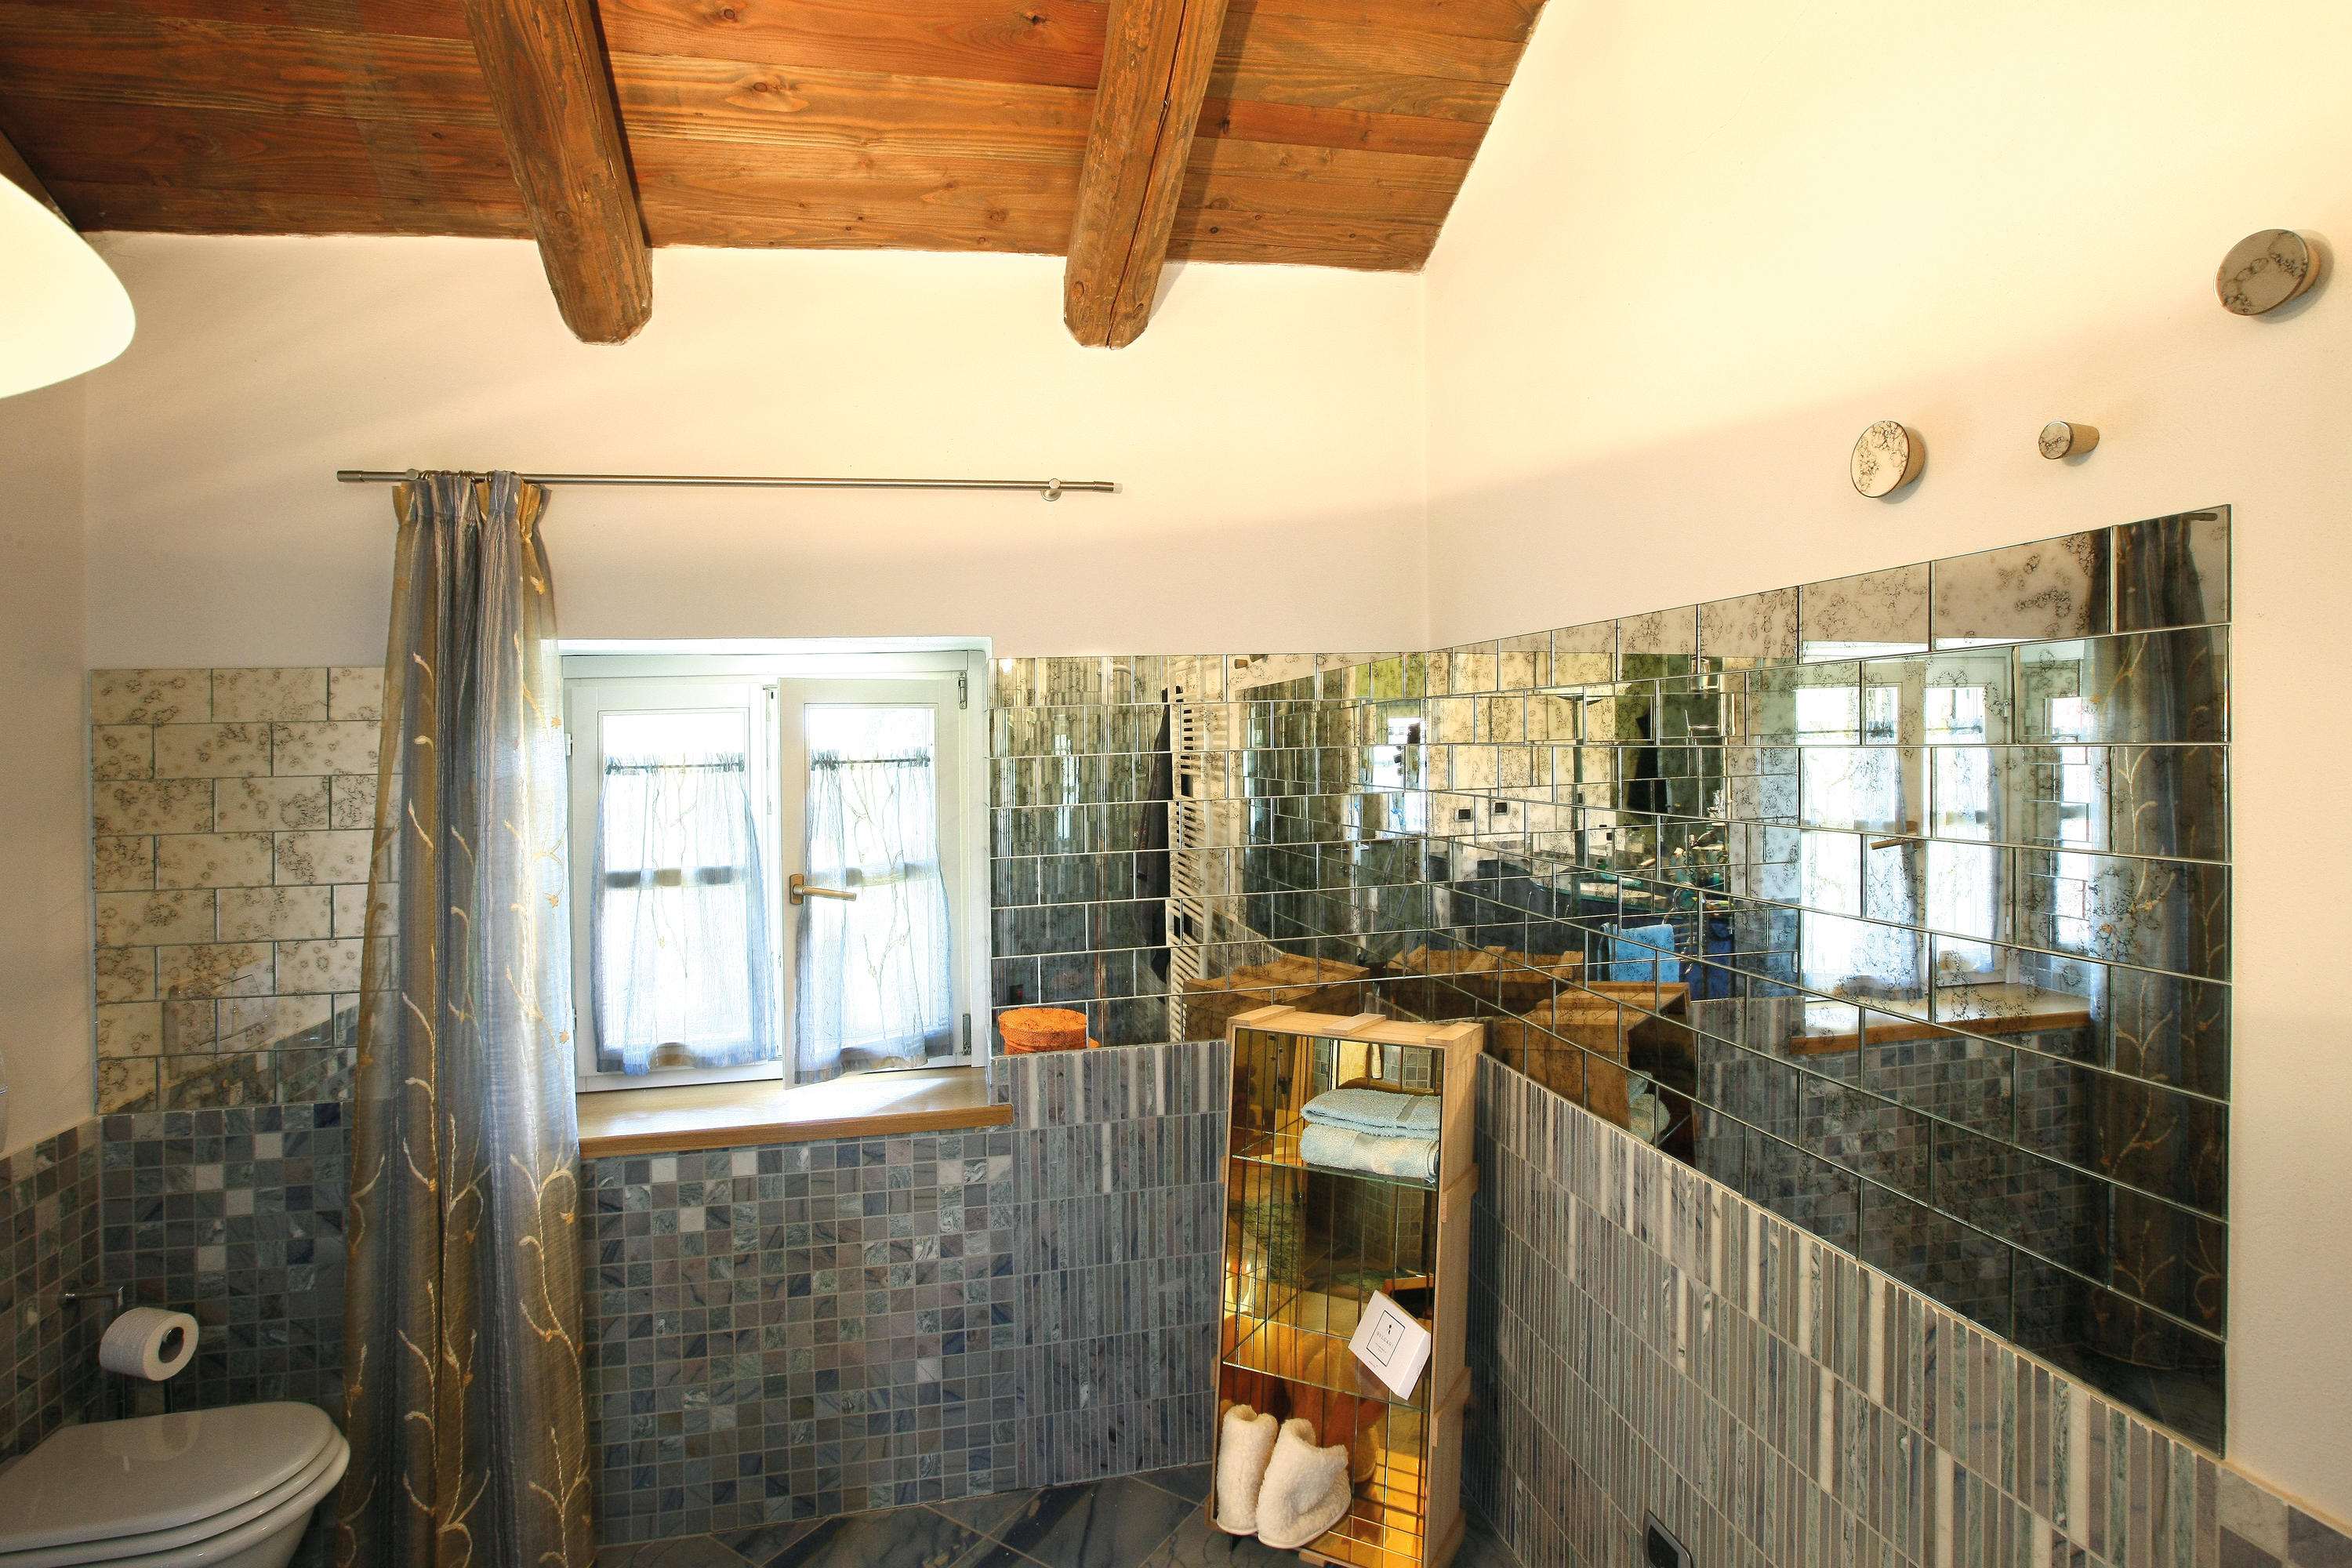 Tile Bianco E Nero 1 Glass Tiles From Antique Mirror